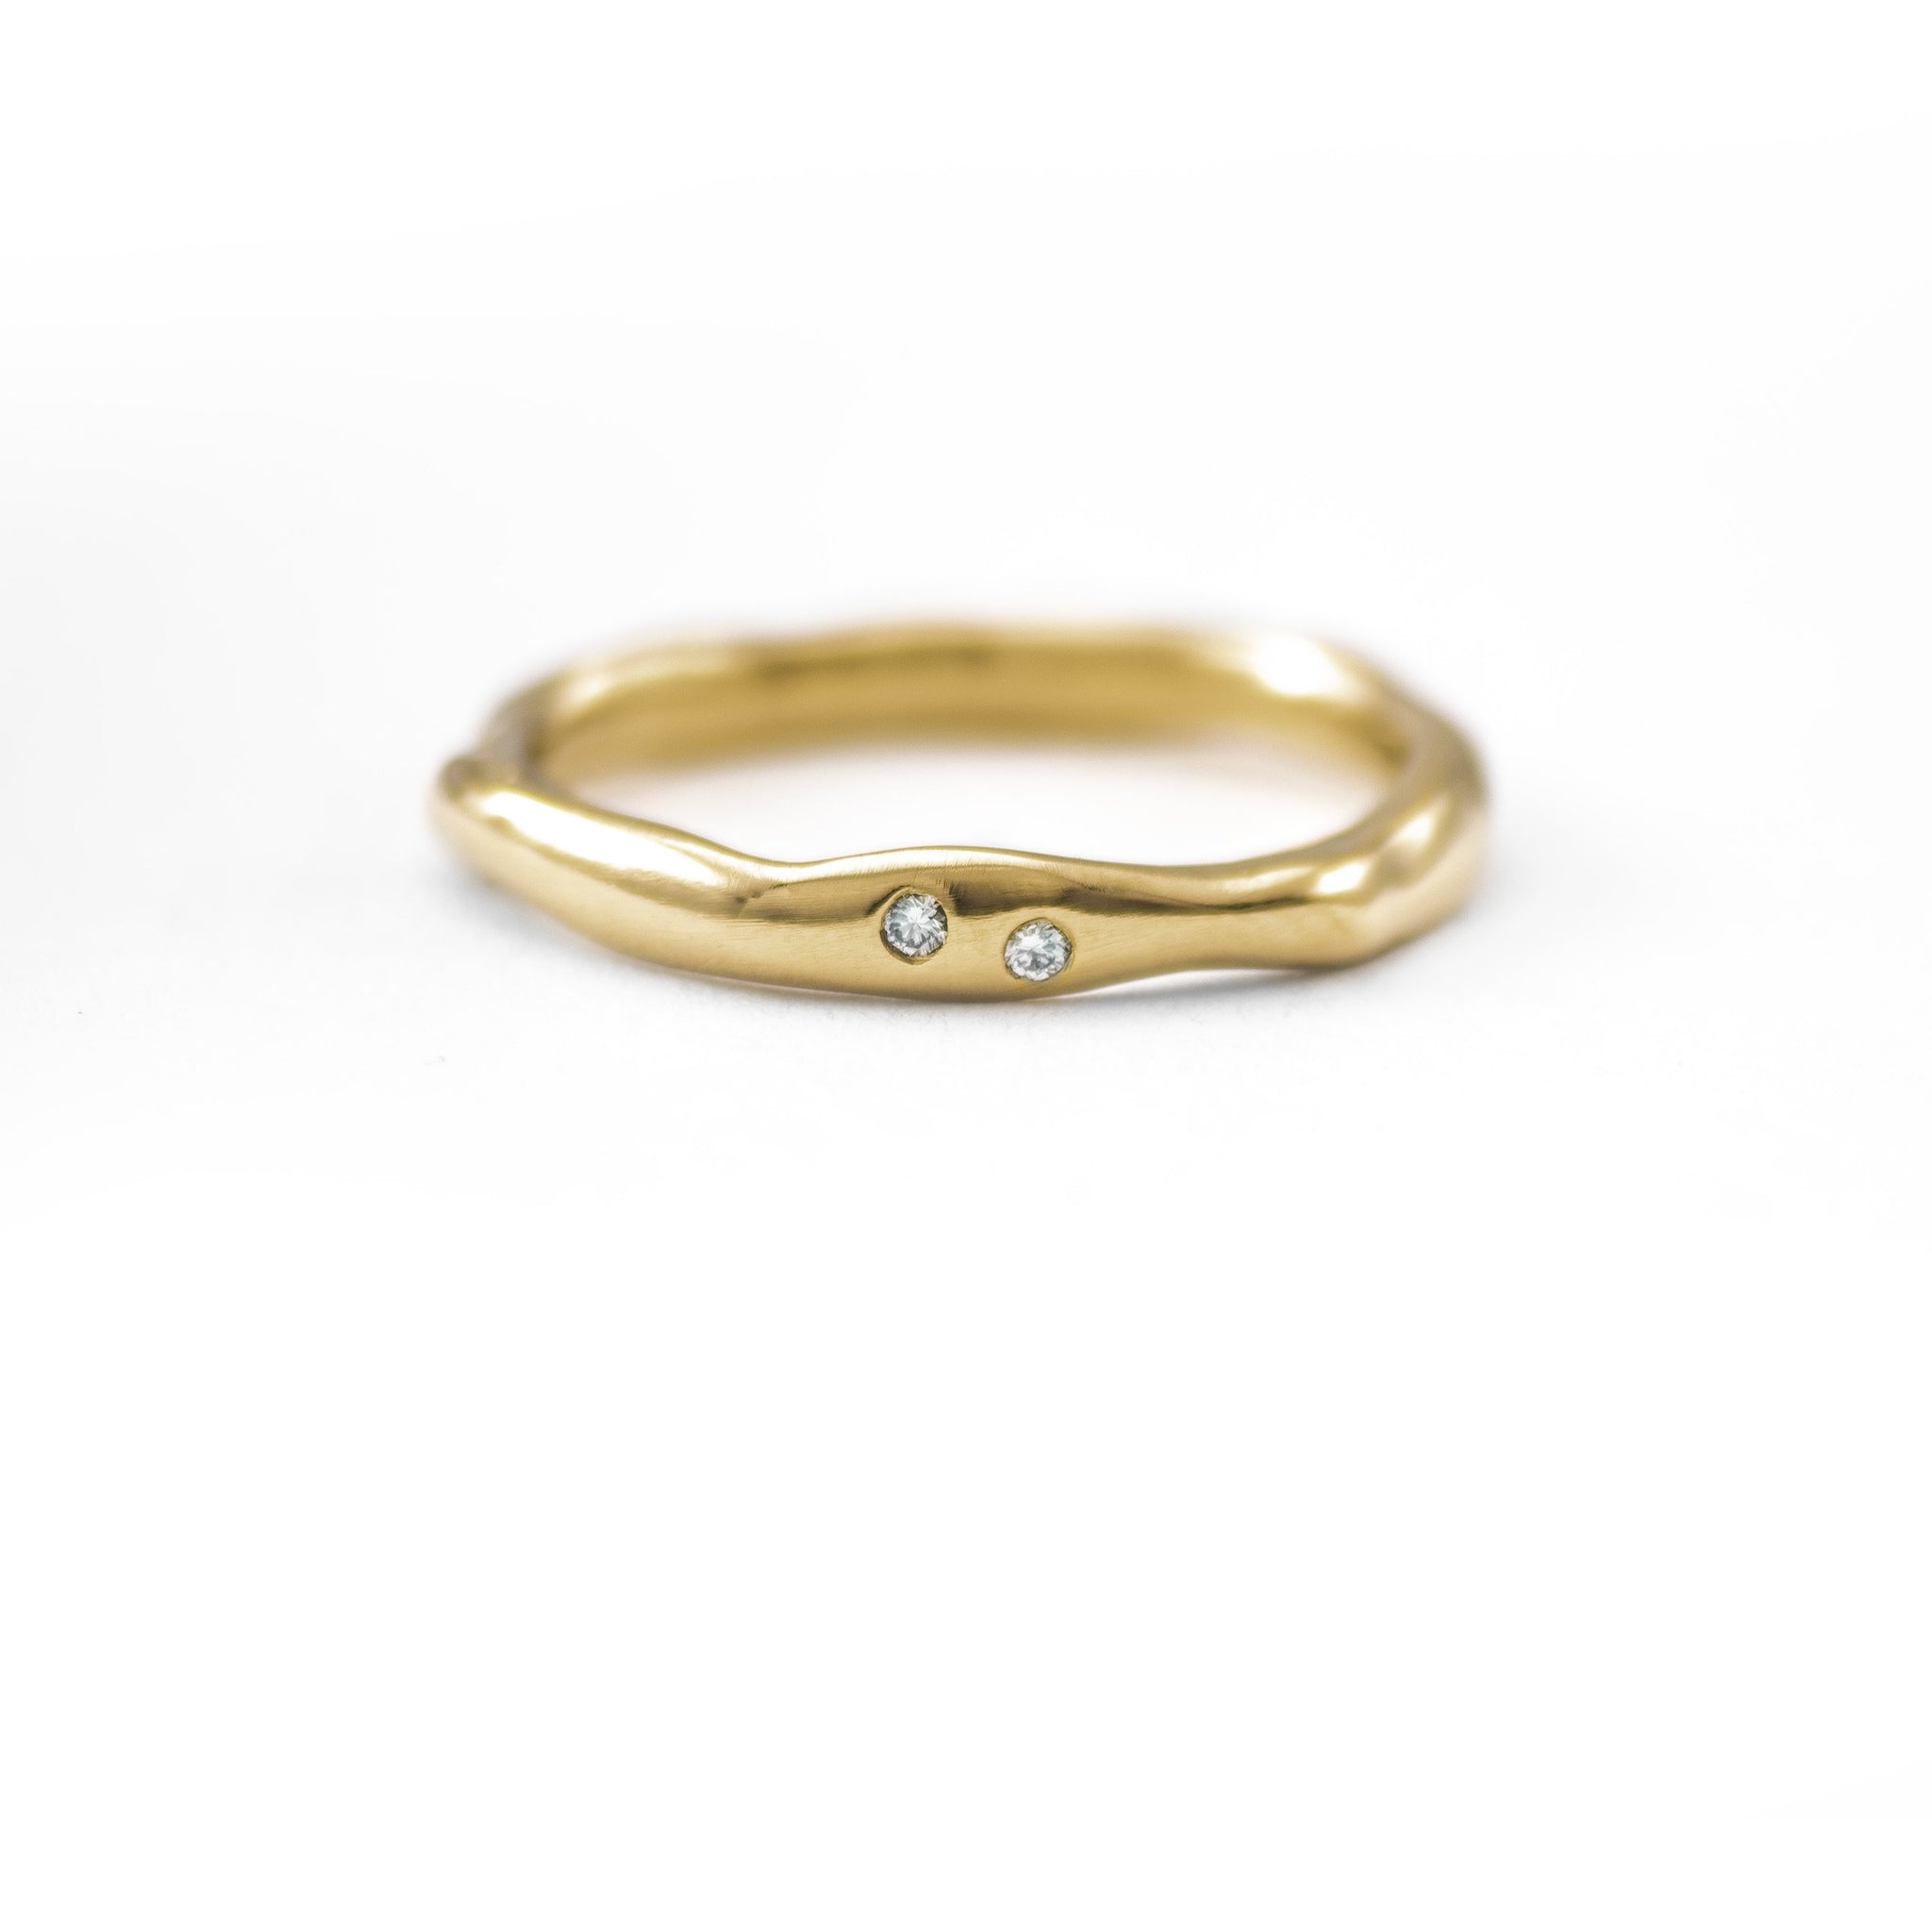 Thin Melt Gold Band with Two Diamonds - Johanna Brierley Jewellery Design